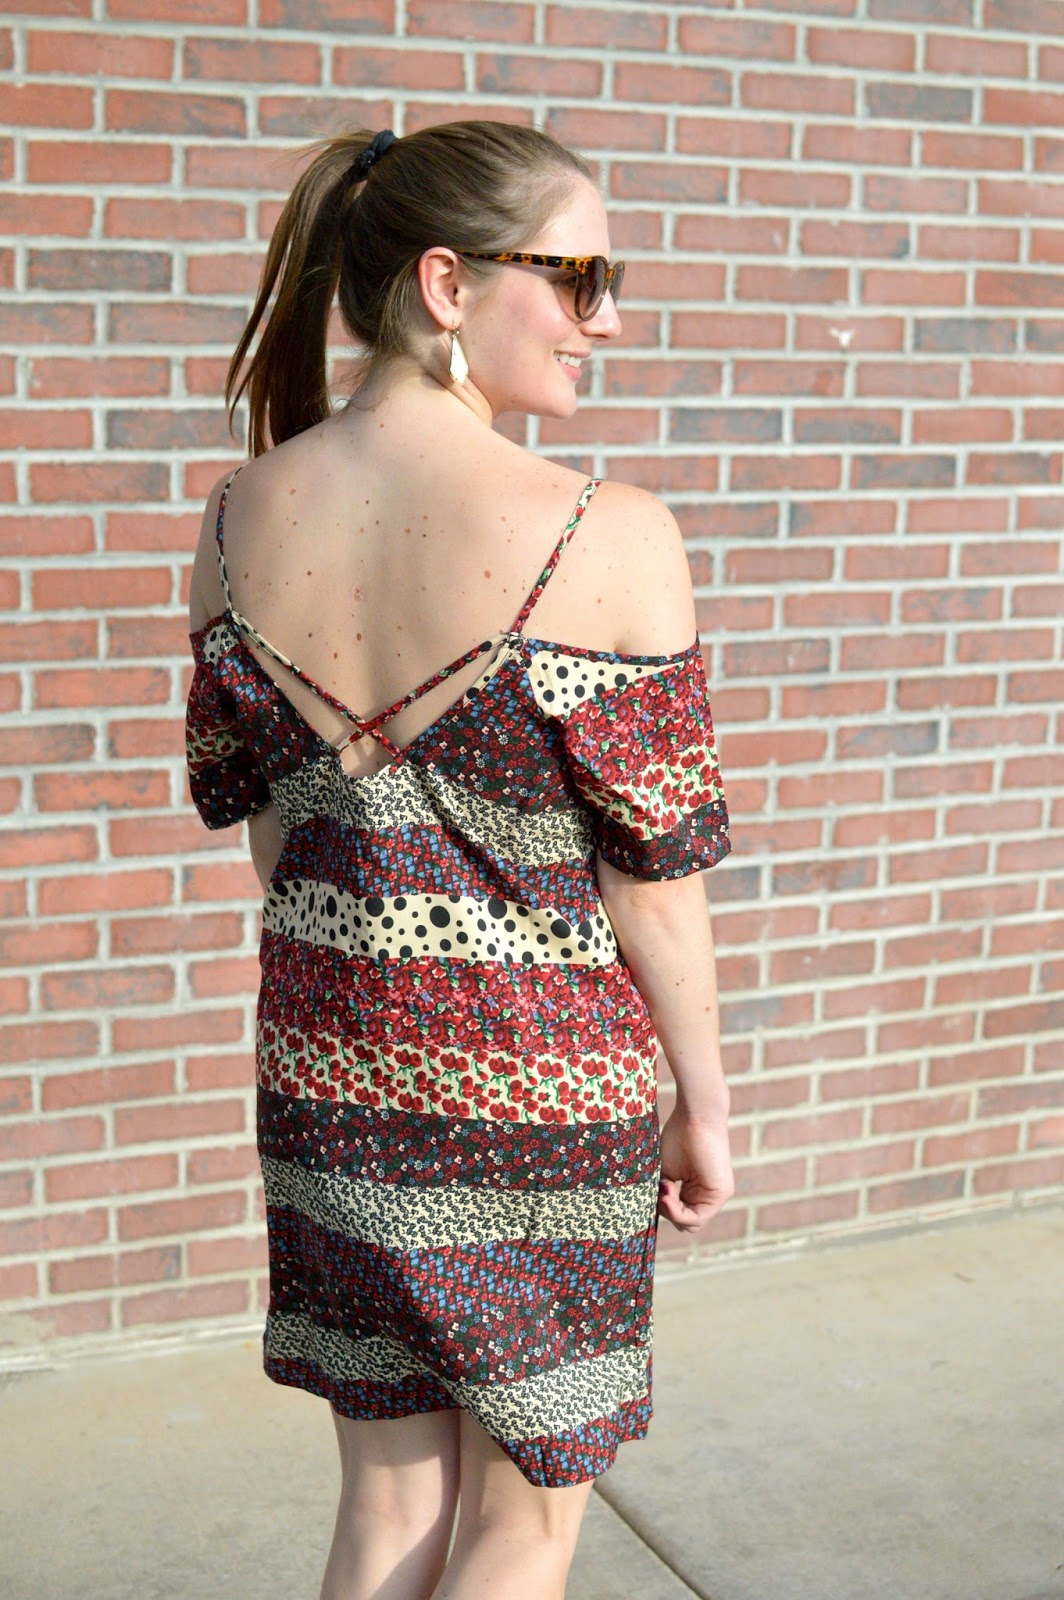 spring trends 2016: off the shoulder dress with a crisscross back